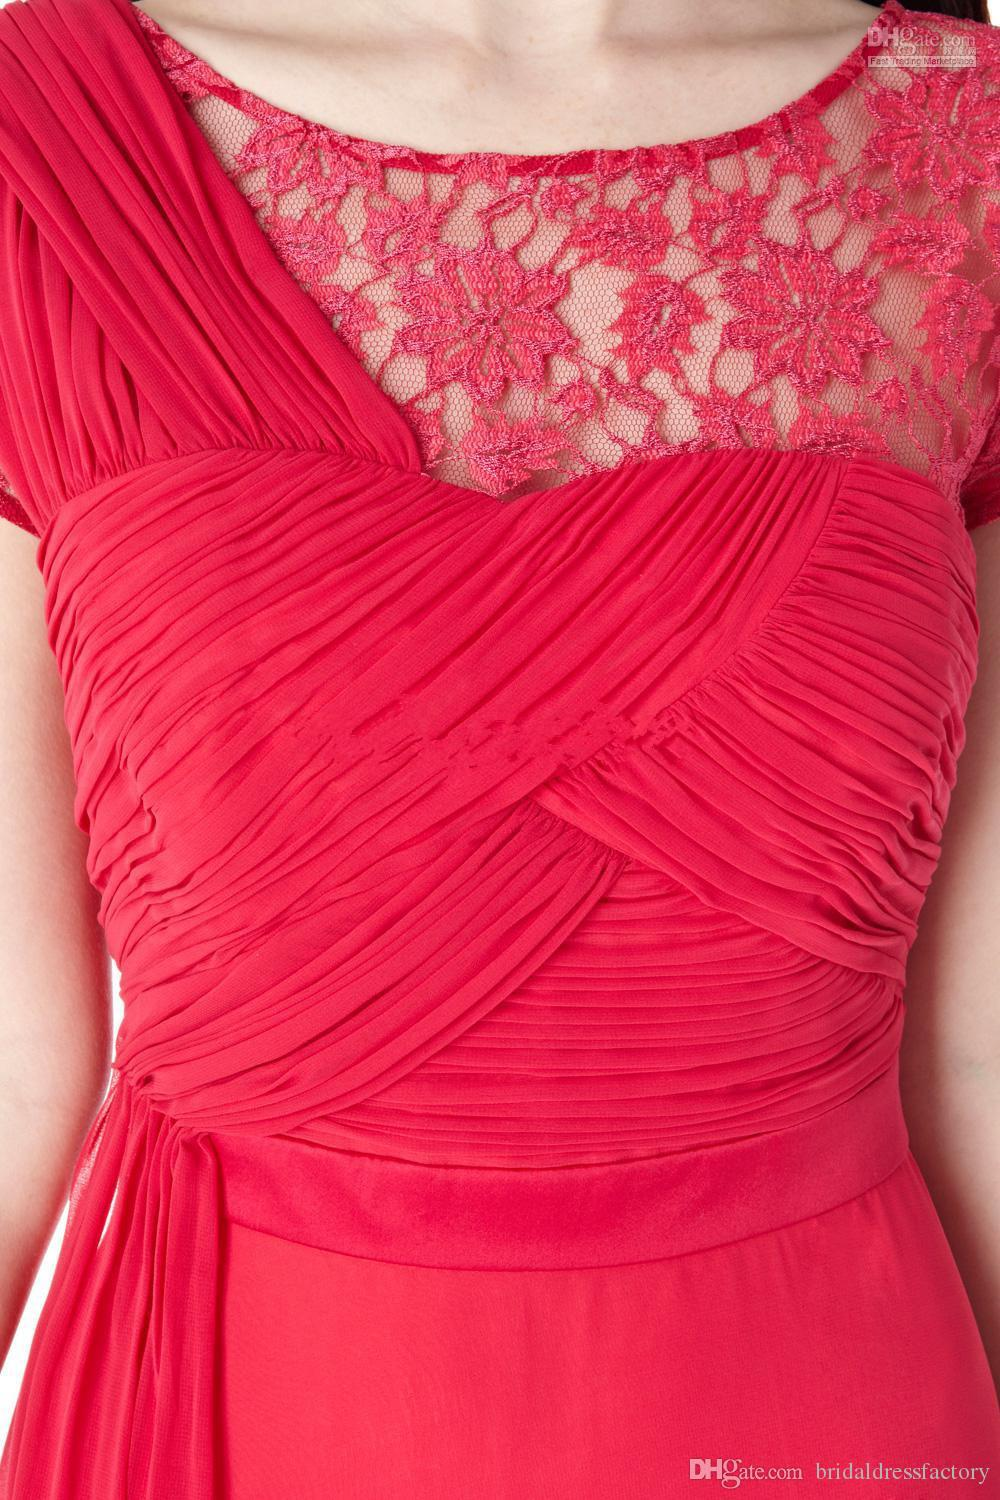 2018 new hot sexy short colorful vestidos de festa cap sleeve gala red lace chiffon party prom dresses custommade evening dress